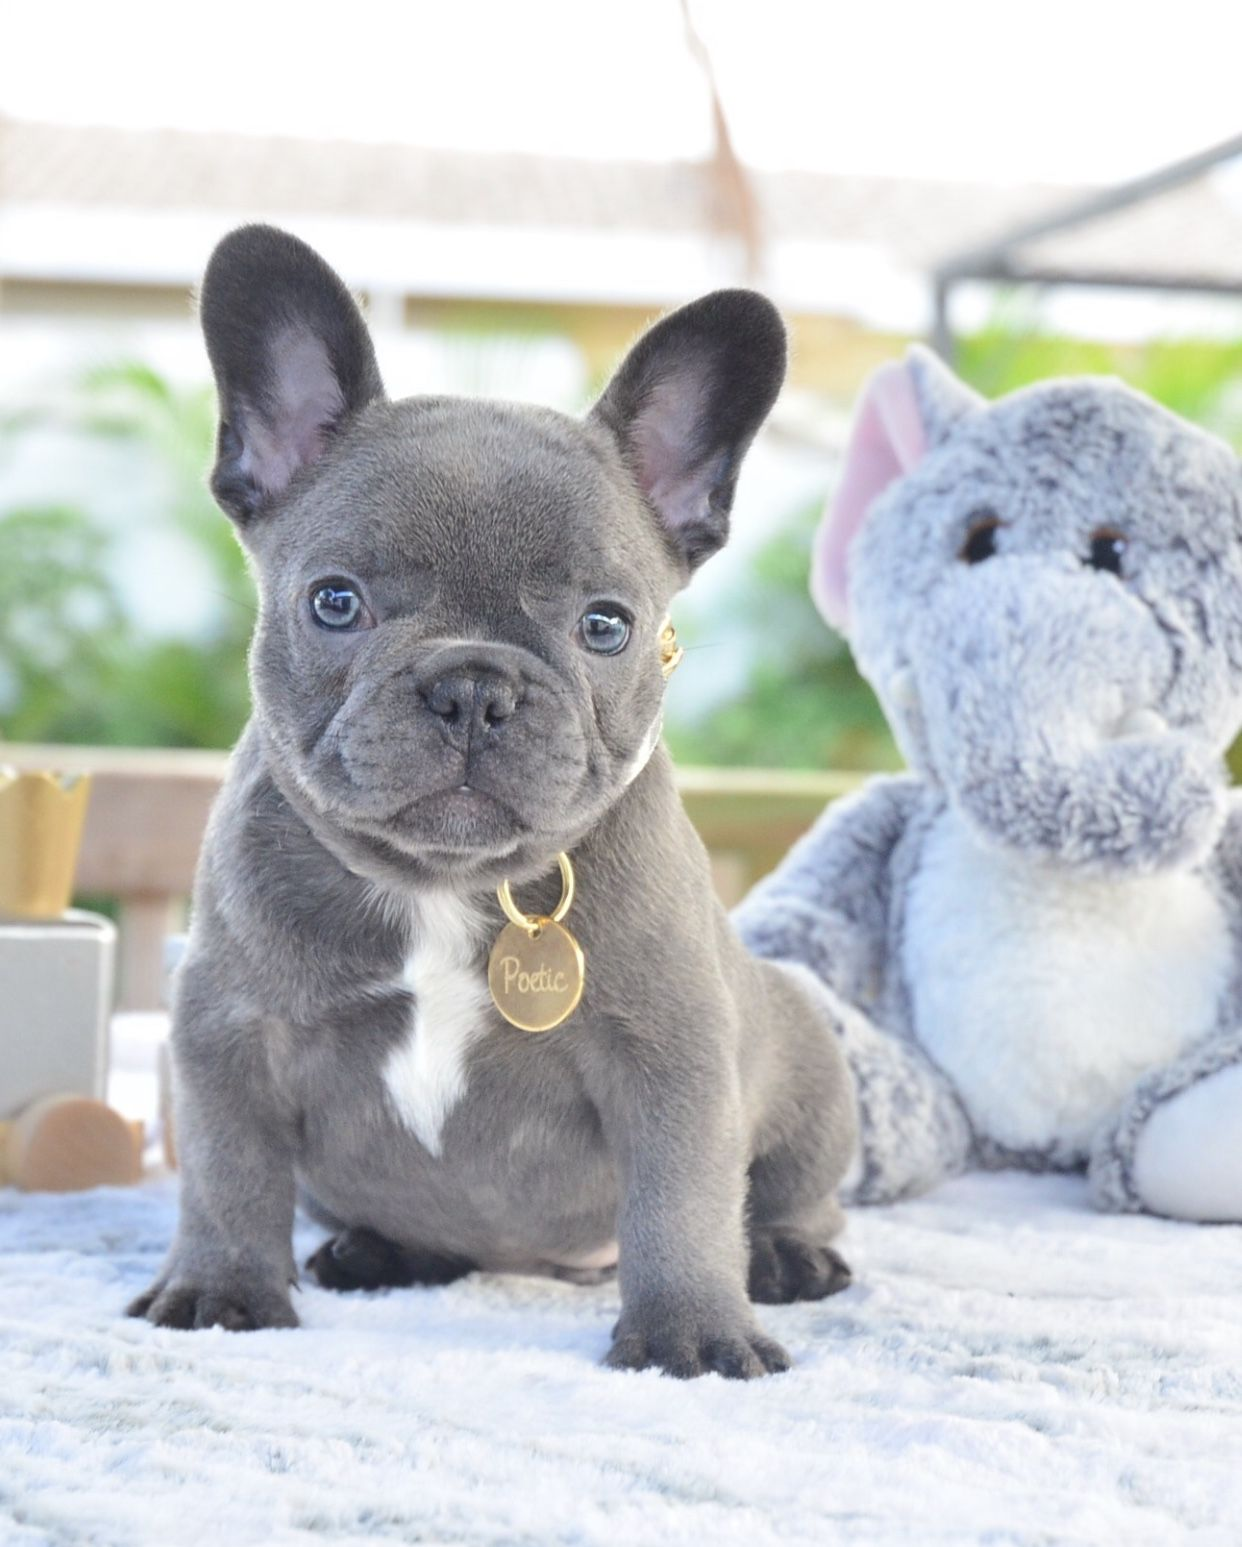 Bubba S Ready To Pounce French Bulldog Silly Animals French Bulldog Puppies